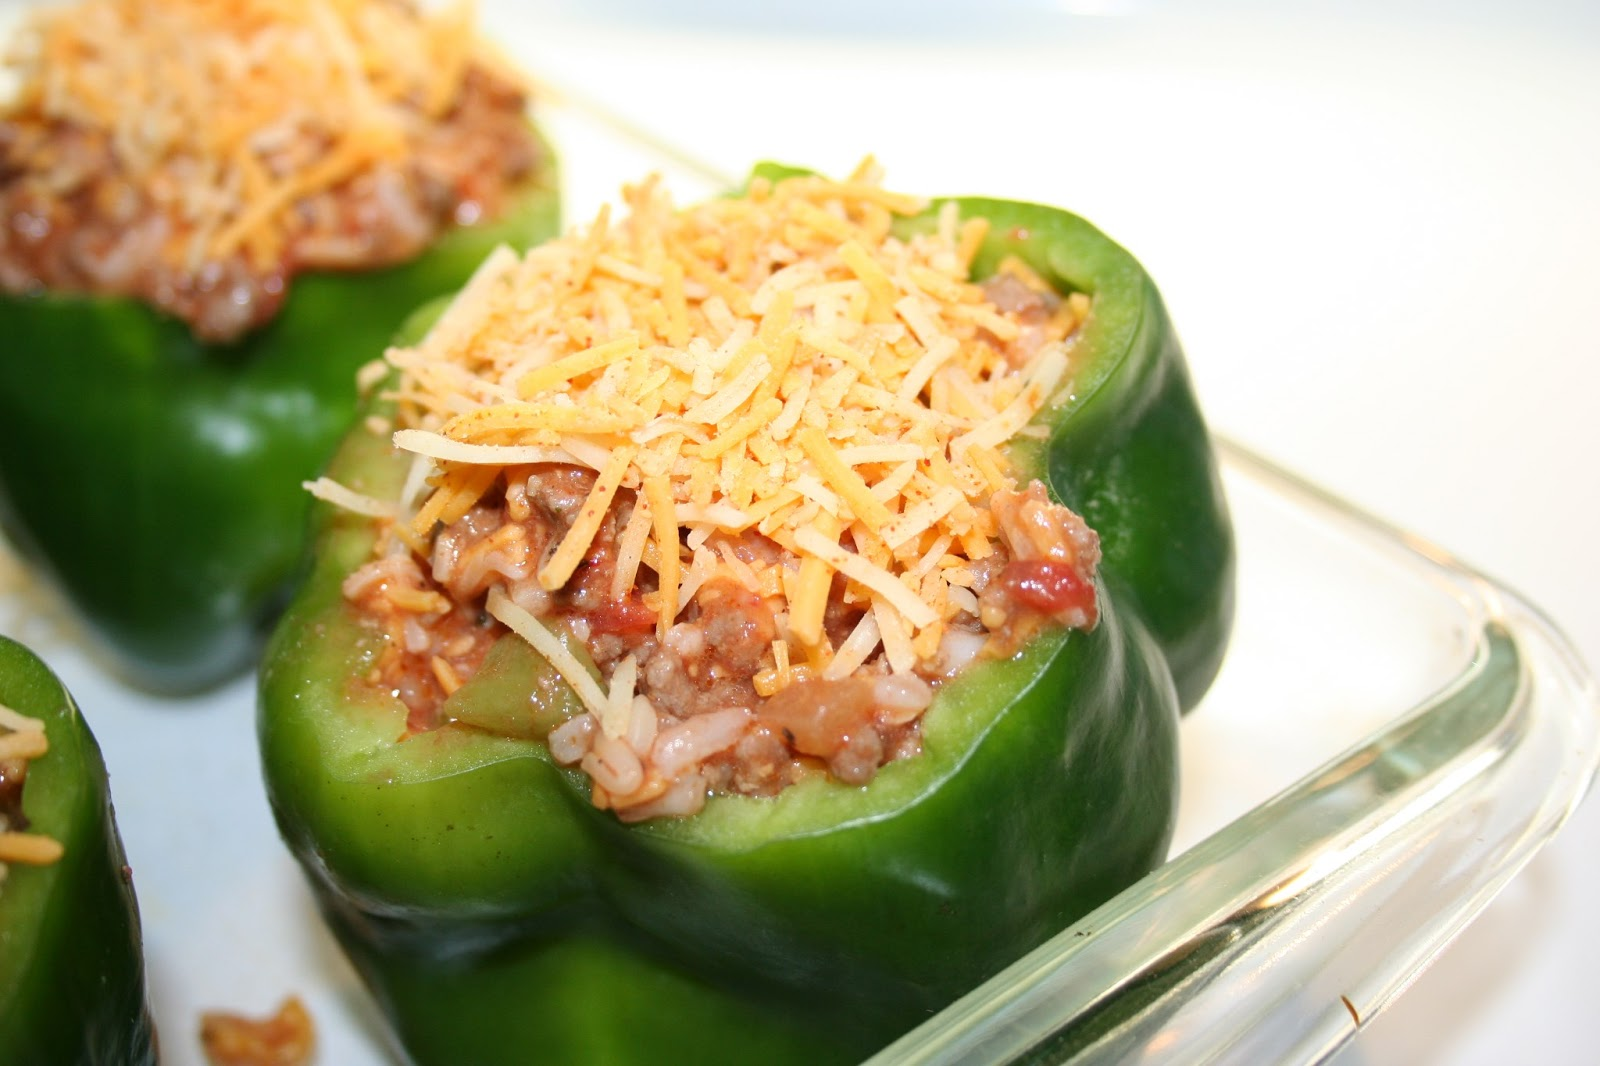 chicken scratch poultry: Stuffed Green Bell Peppers